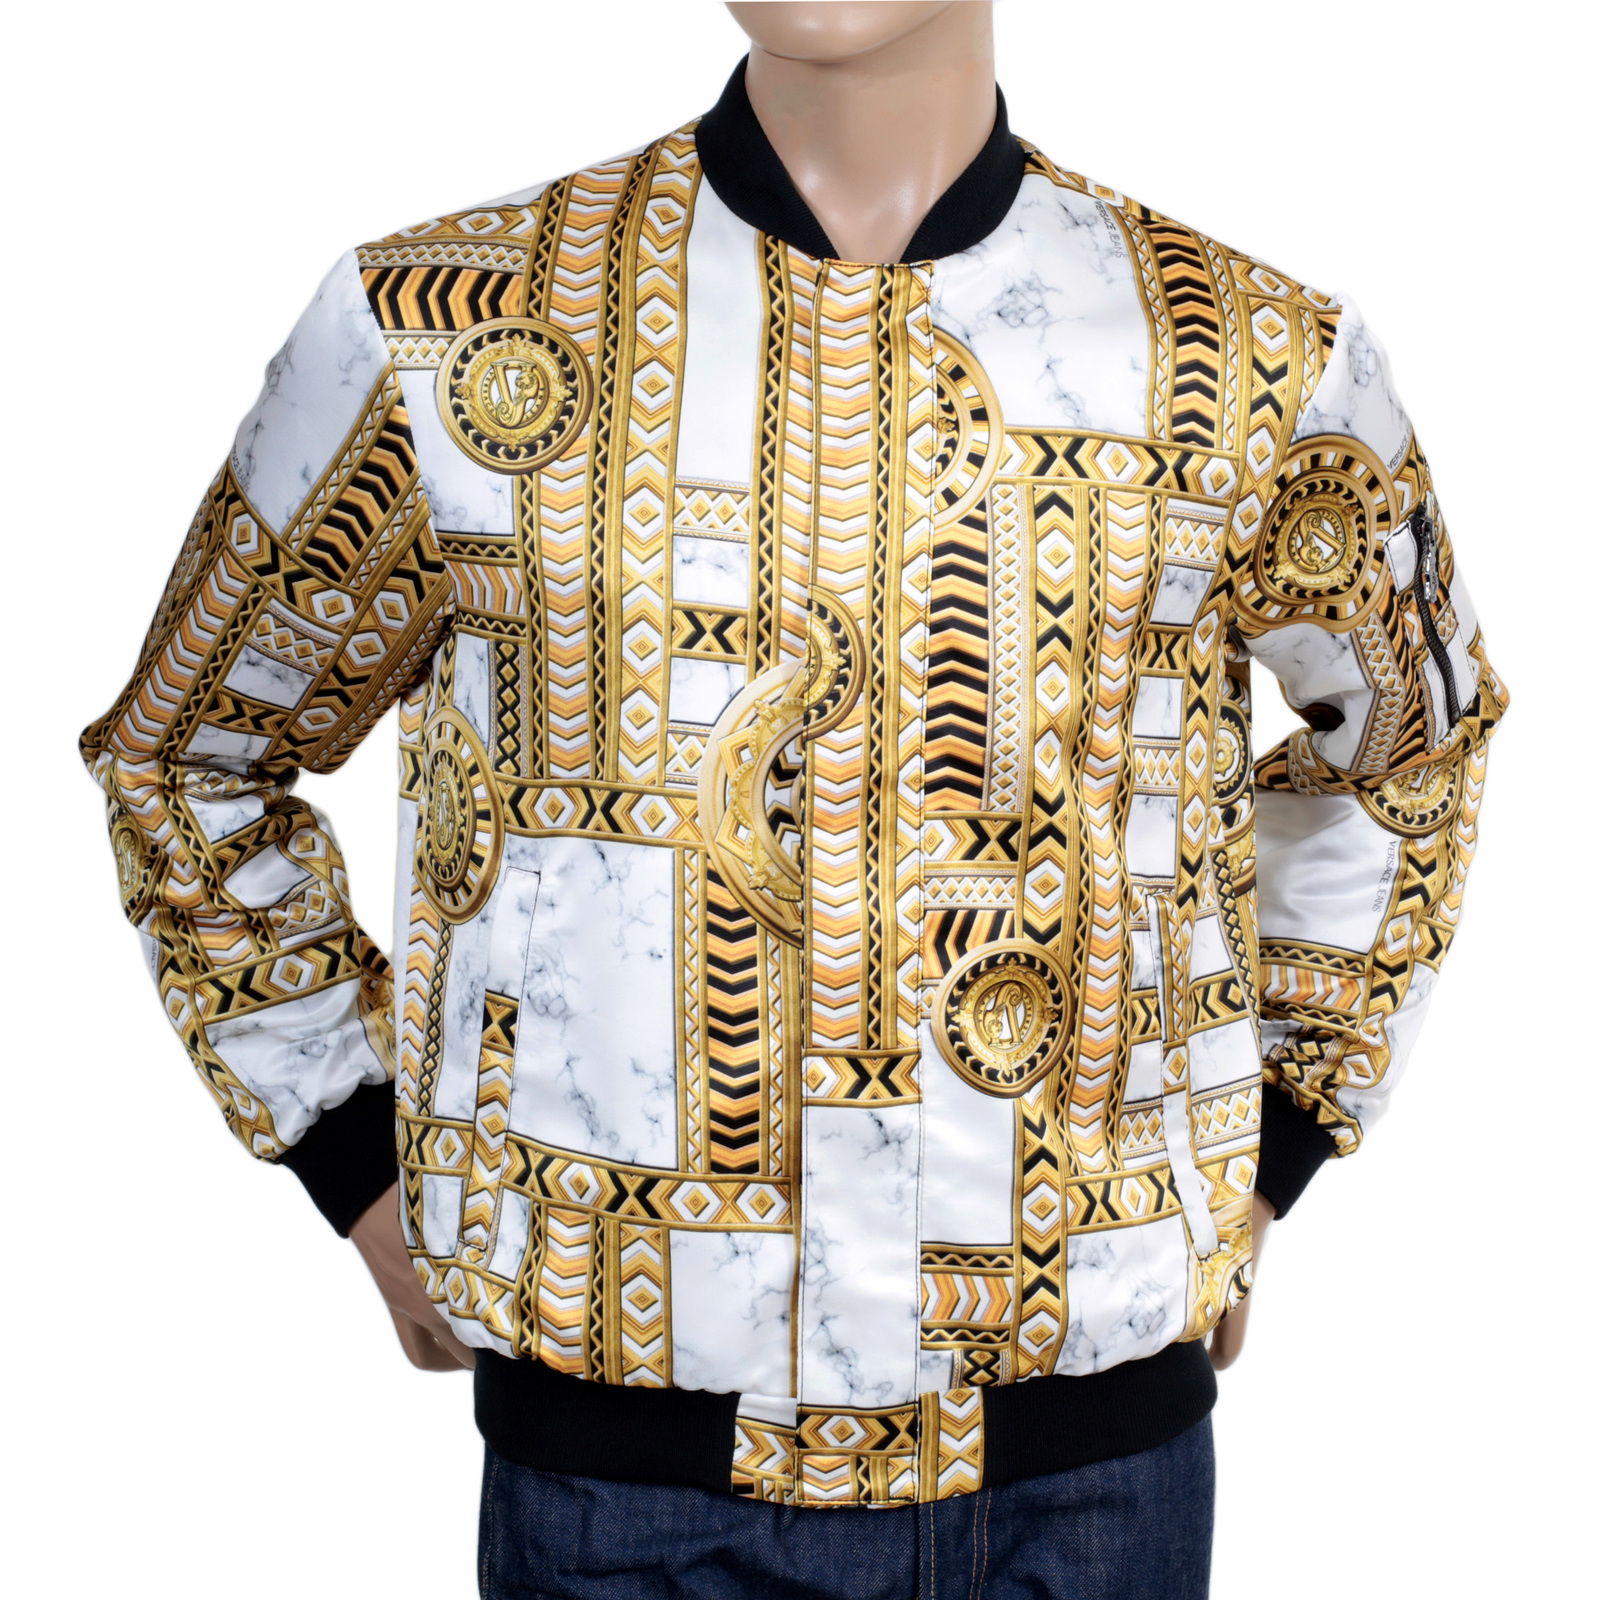 Duchesse Printed Blouson Jacket For Men From Versace